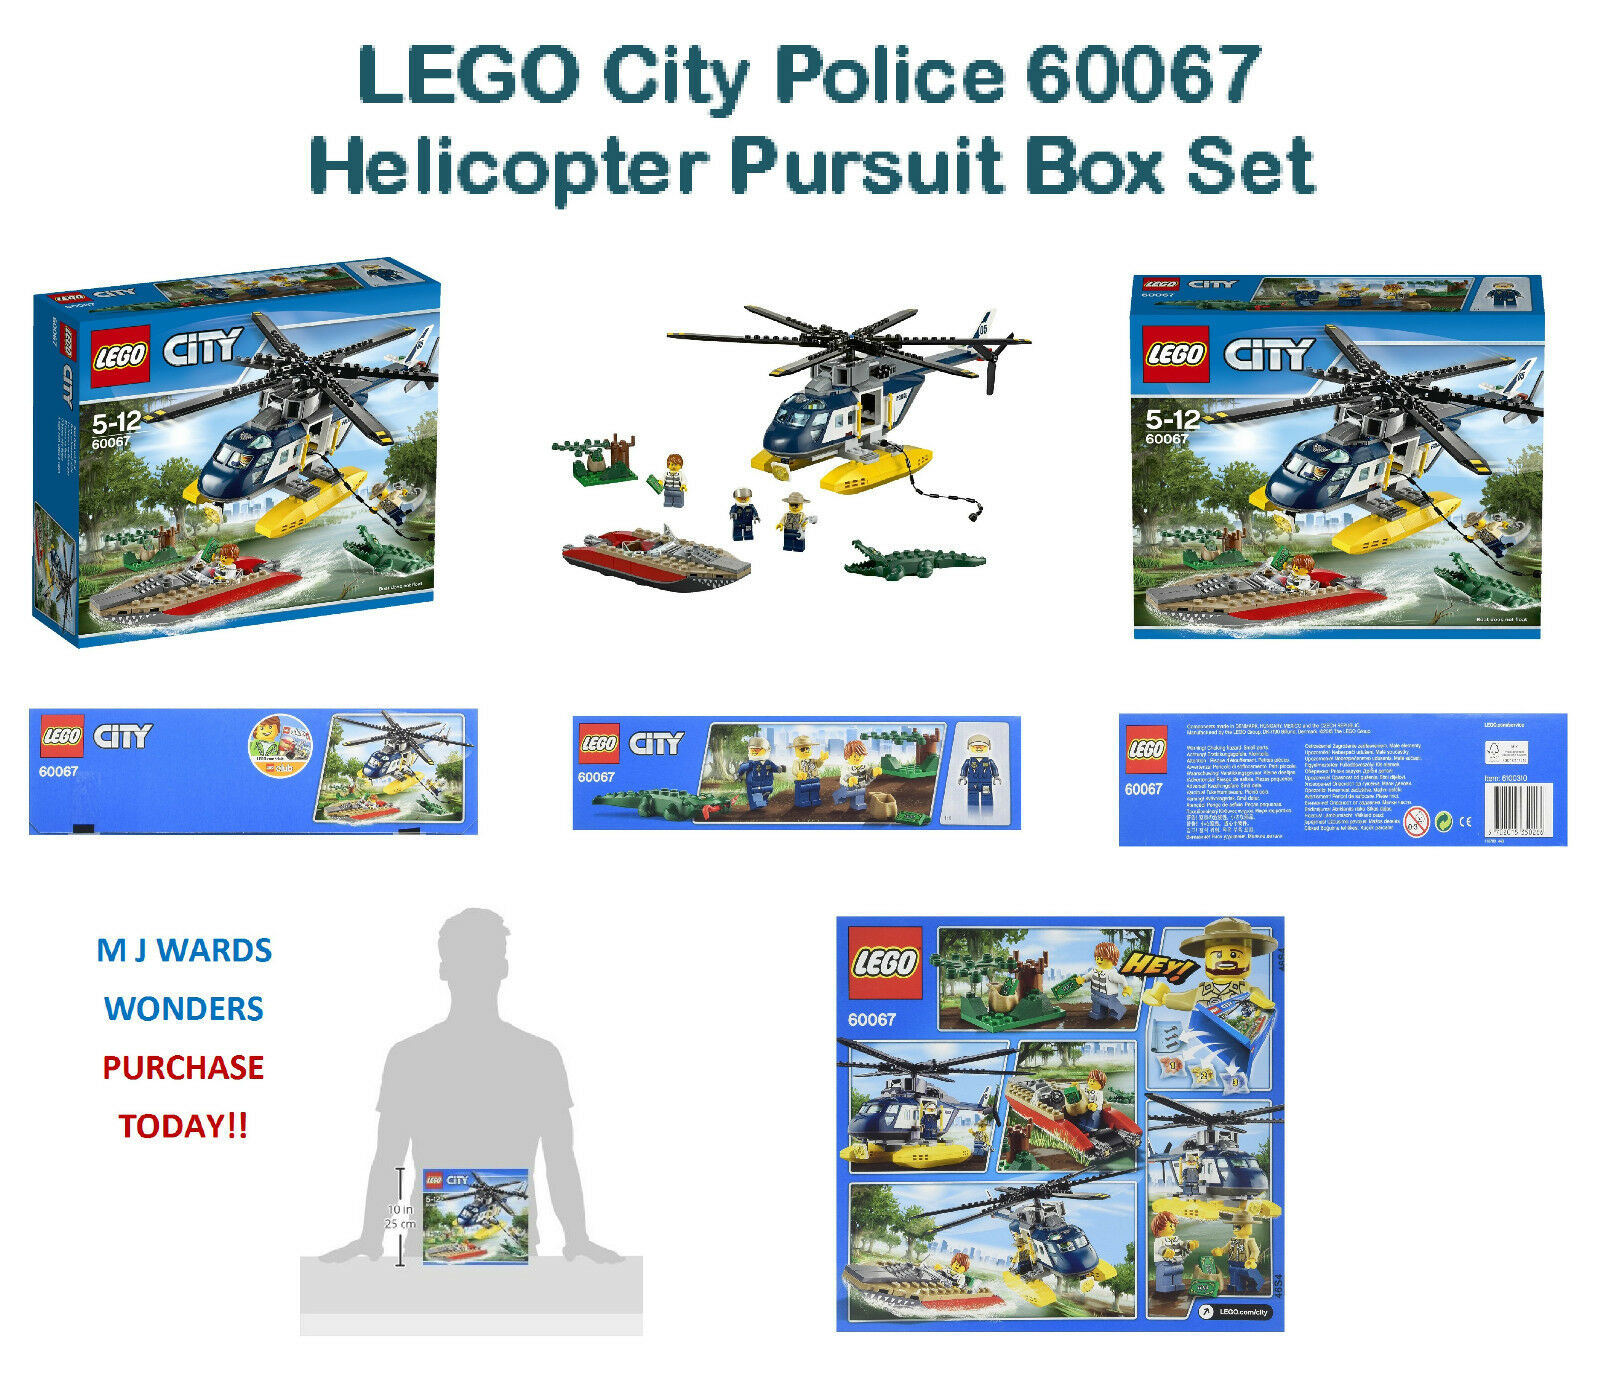 LEGO City Police 60067 - Helicopter Pursuit Box Set  PURCHASE TODAY